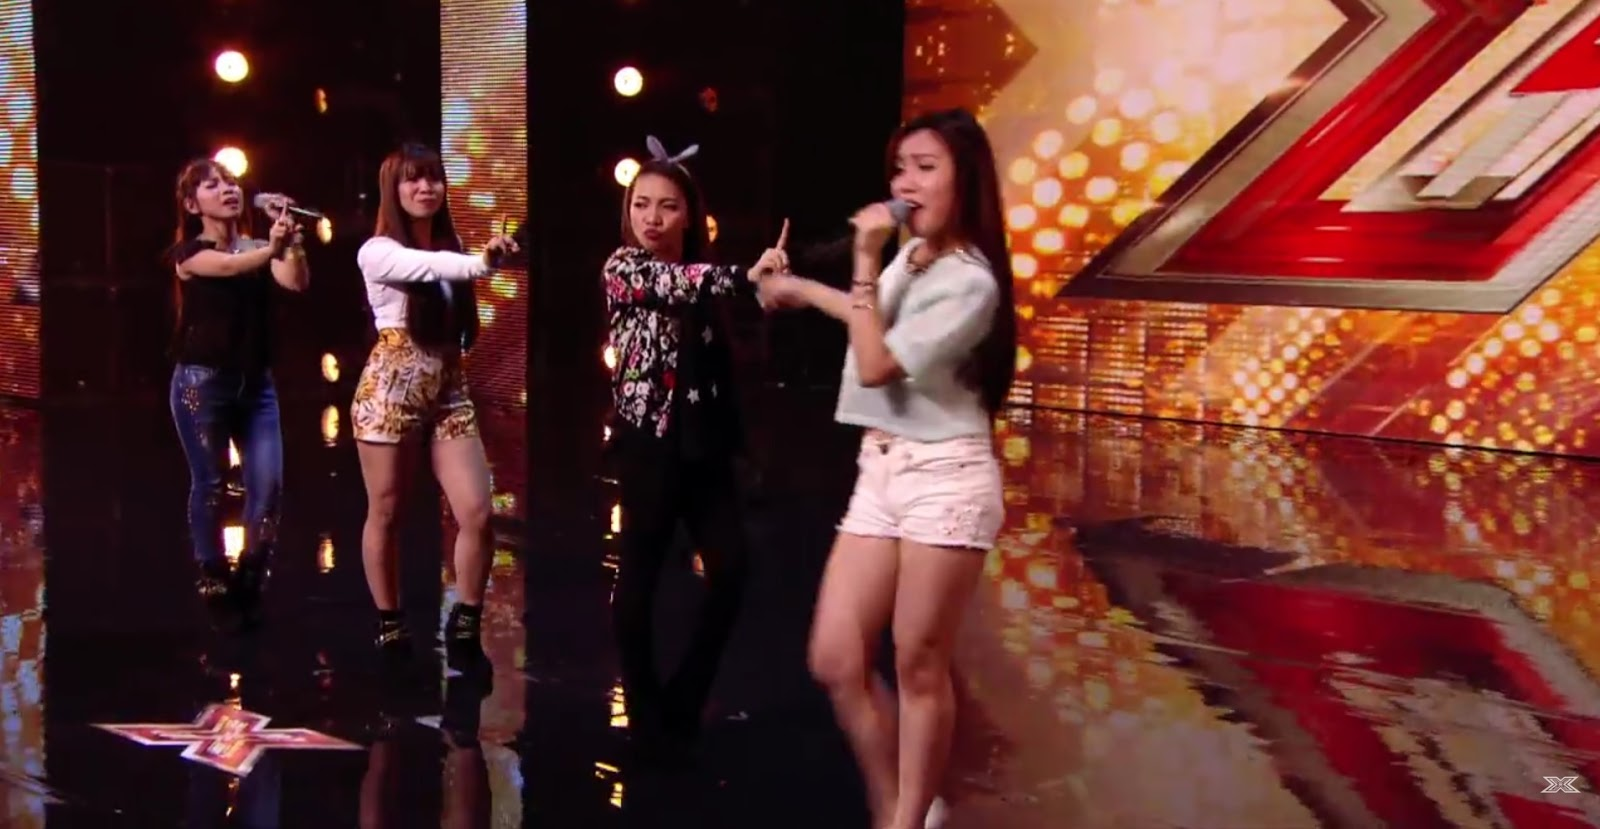 4th IMPACT, X-FACTOR UK 23